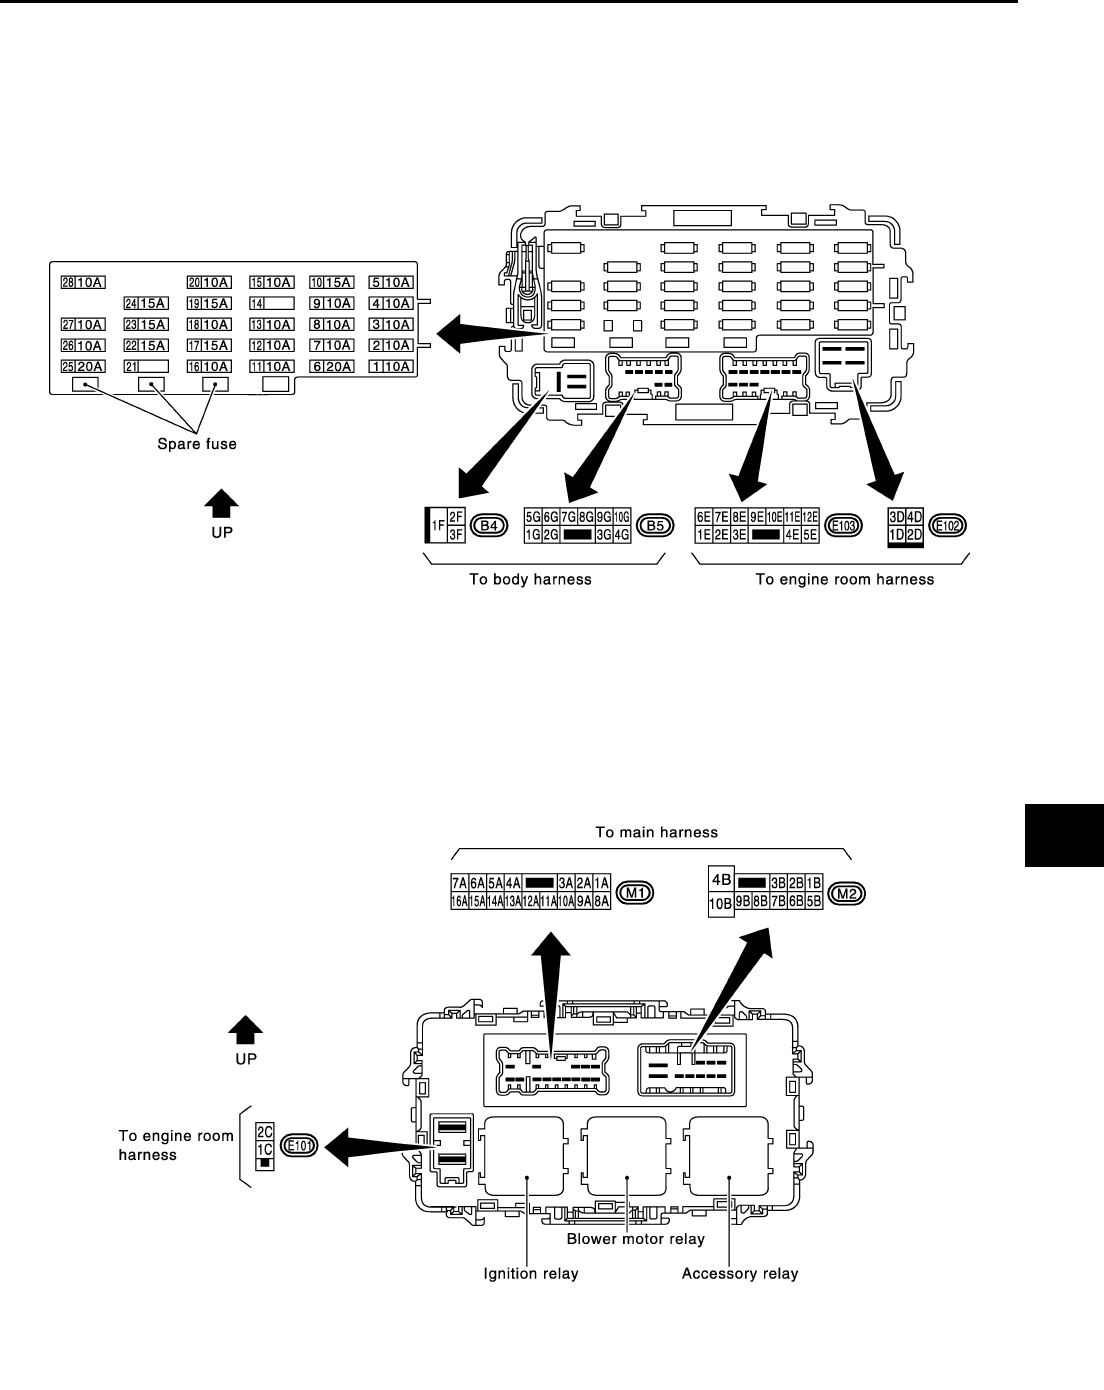 05 Nissan X Trail Fuse Box Diagram Schematics Wiring Diagrams Elgrand Xtrail T30 Workshop Manual 2005 32 Pdf Frontier Pathfinder